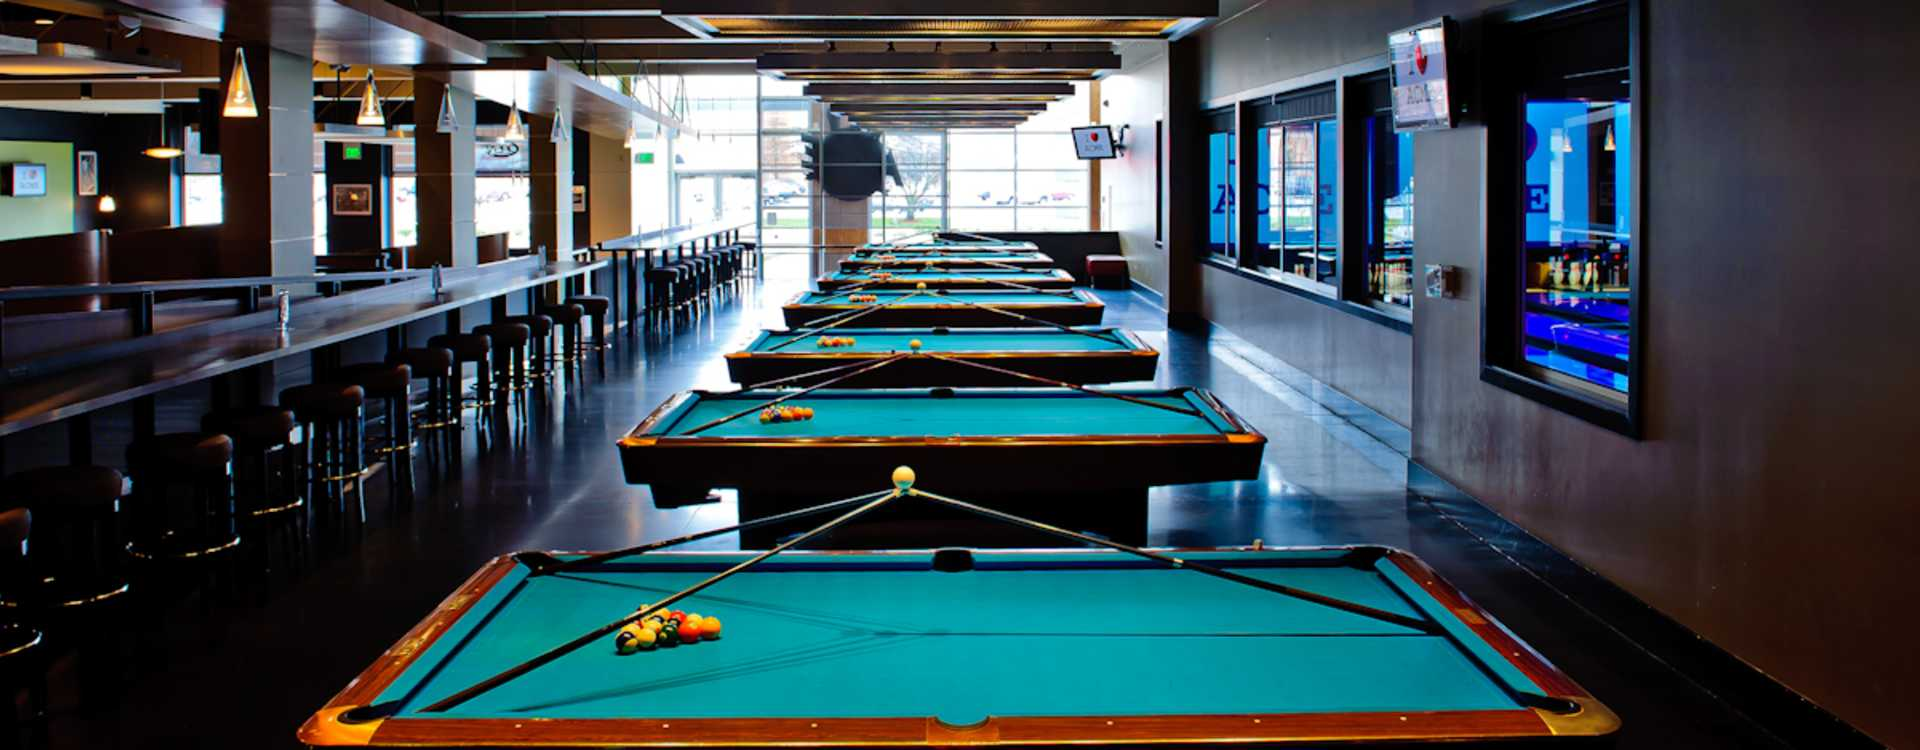 meeting-facility-ACME_Bowling__Billiards_and_Events_Meeting_Facility-8.jpg